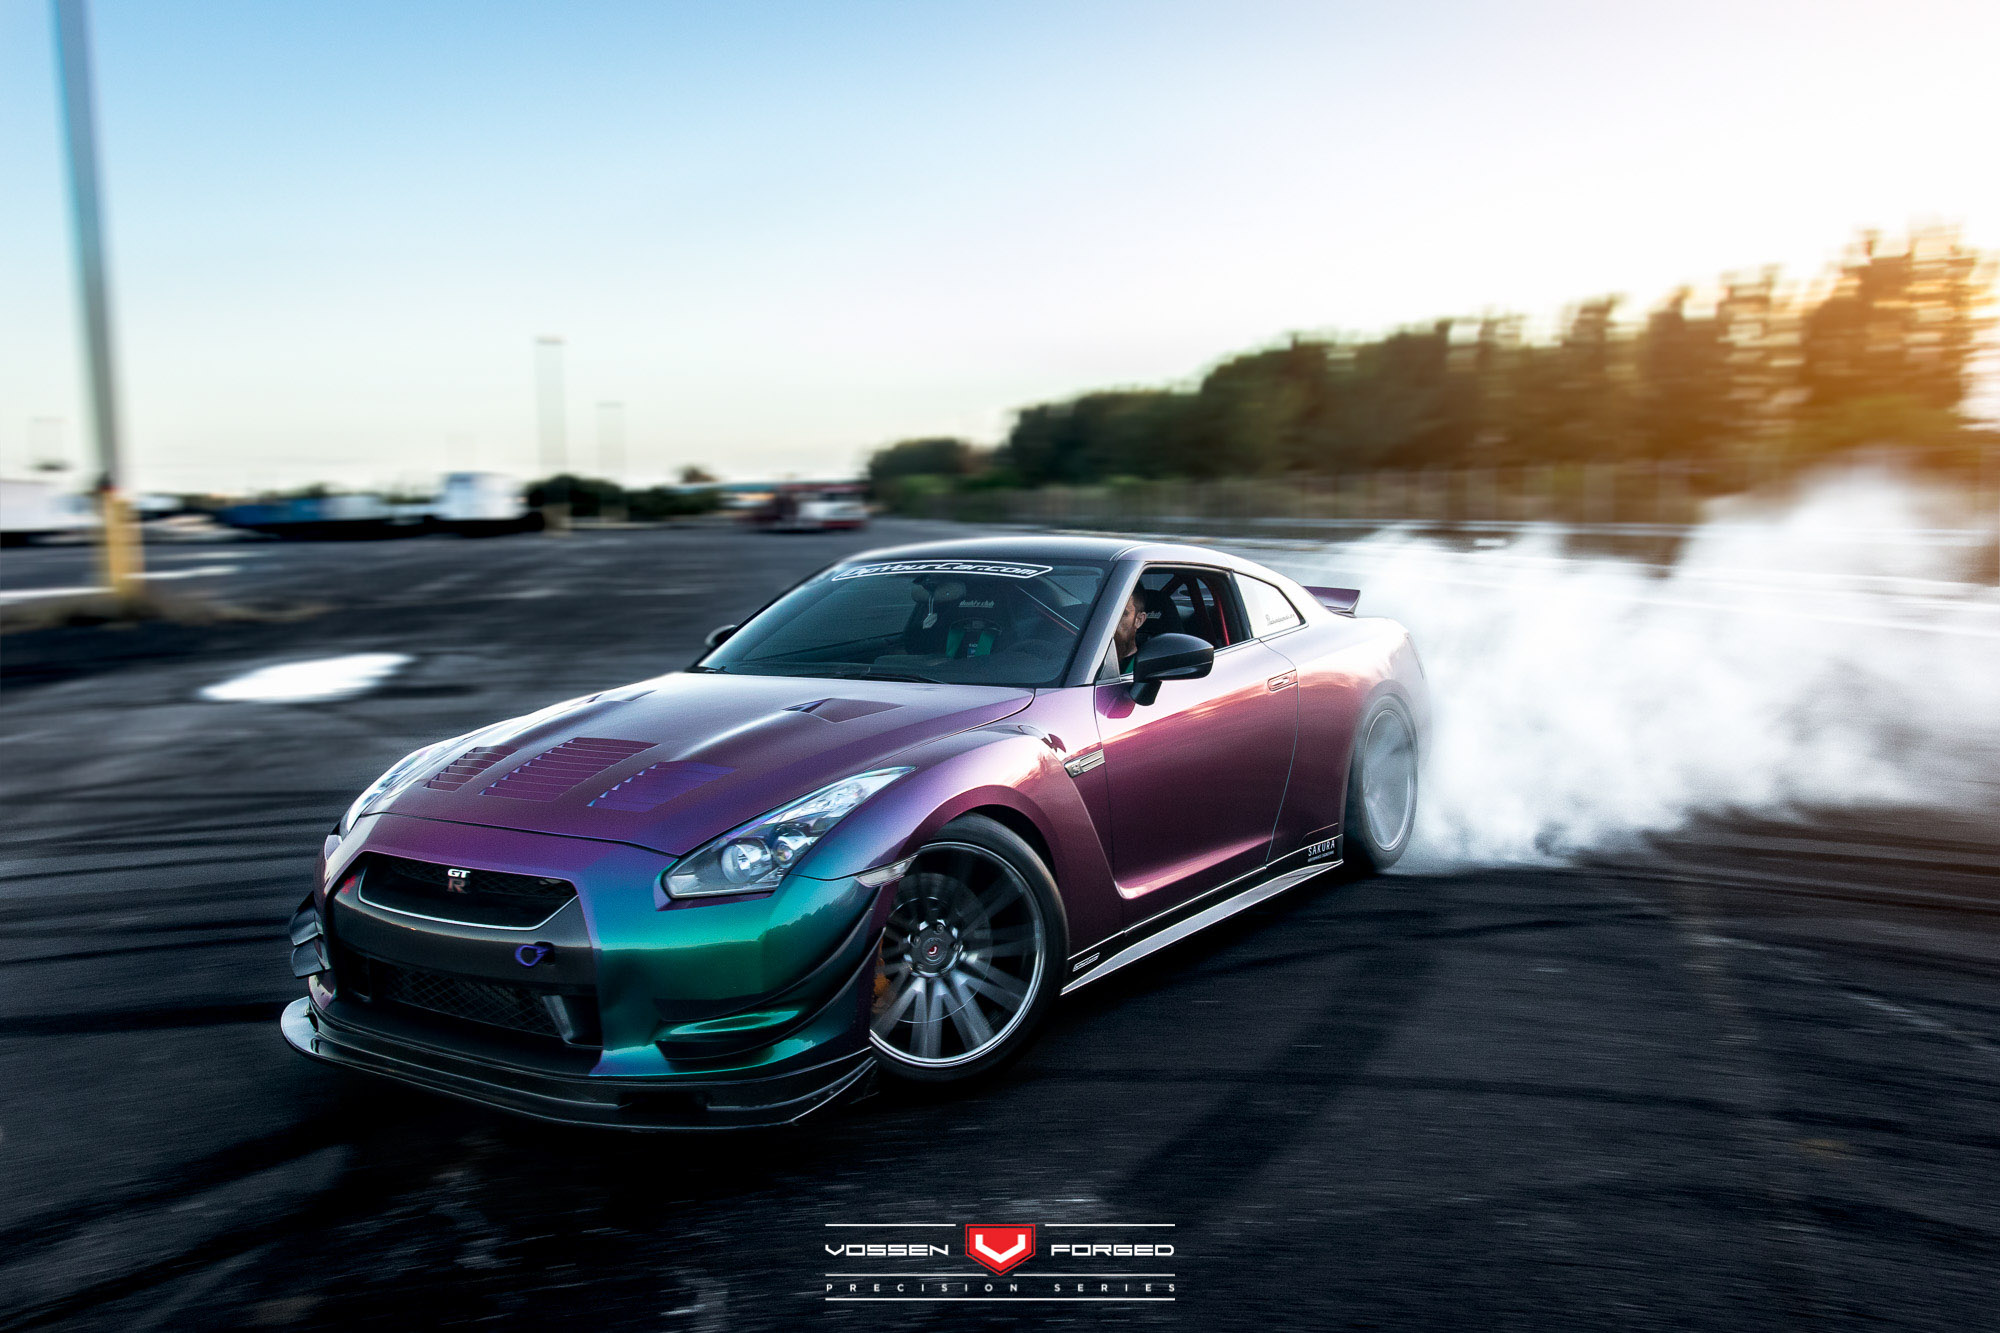 Bien connu This Bearded Man Has an RWD Nissan GT-R with Color Flip Paint  HE71